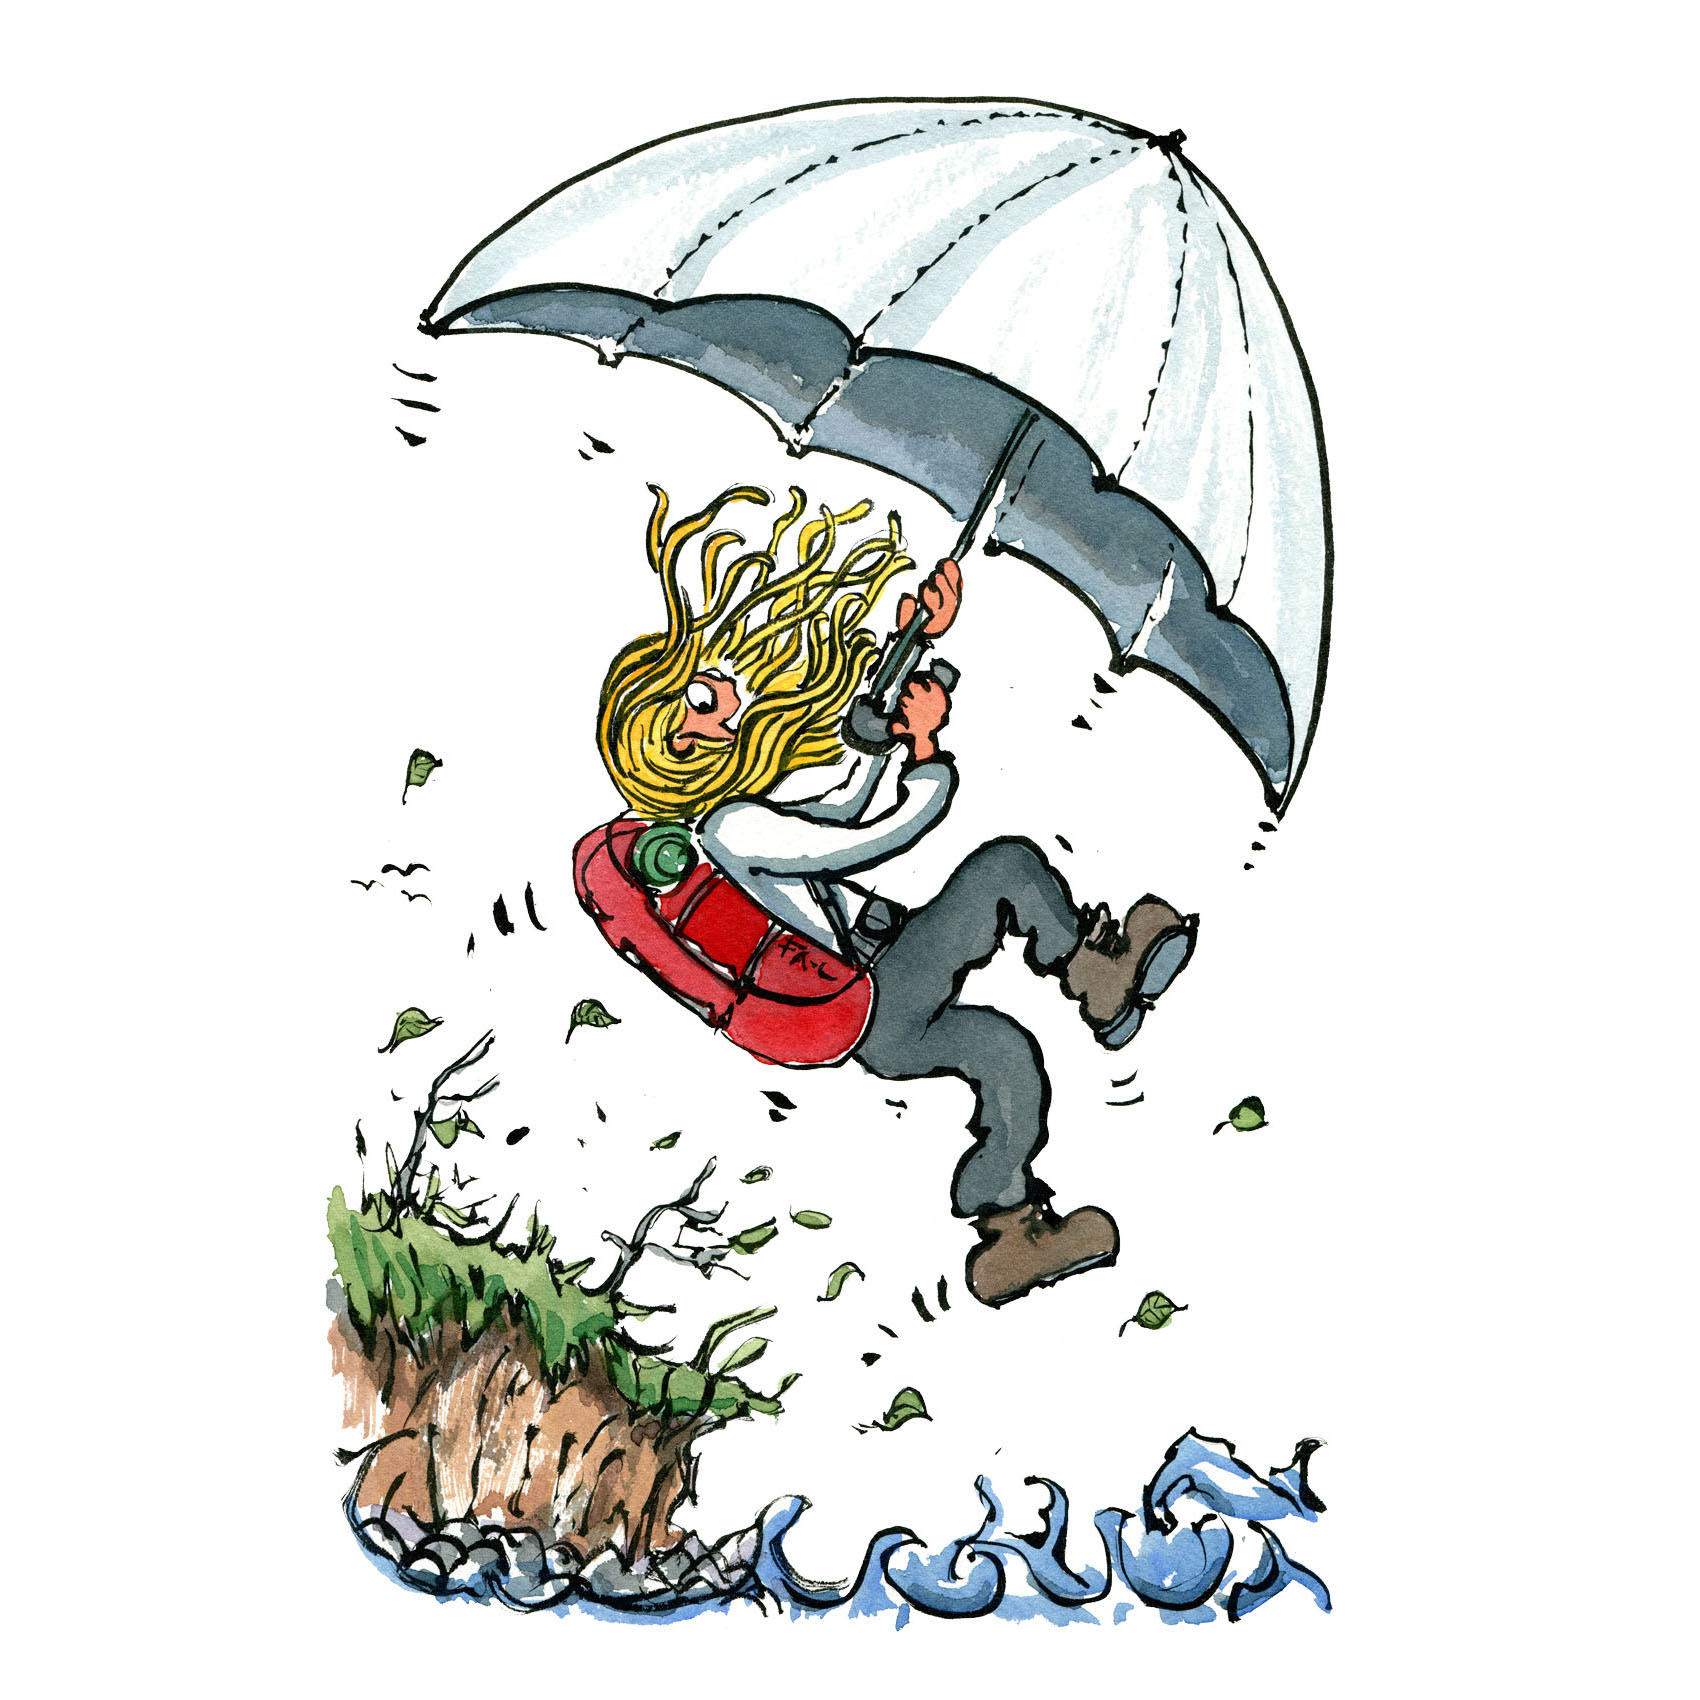 Girl with backpack, hiker with a huge umbrella over water. illustration by Frits ahlefeldt